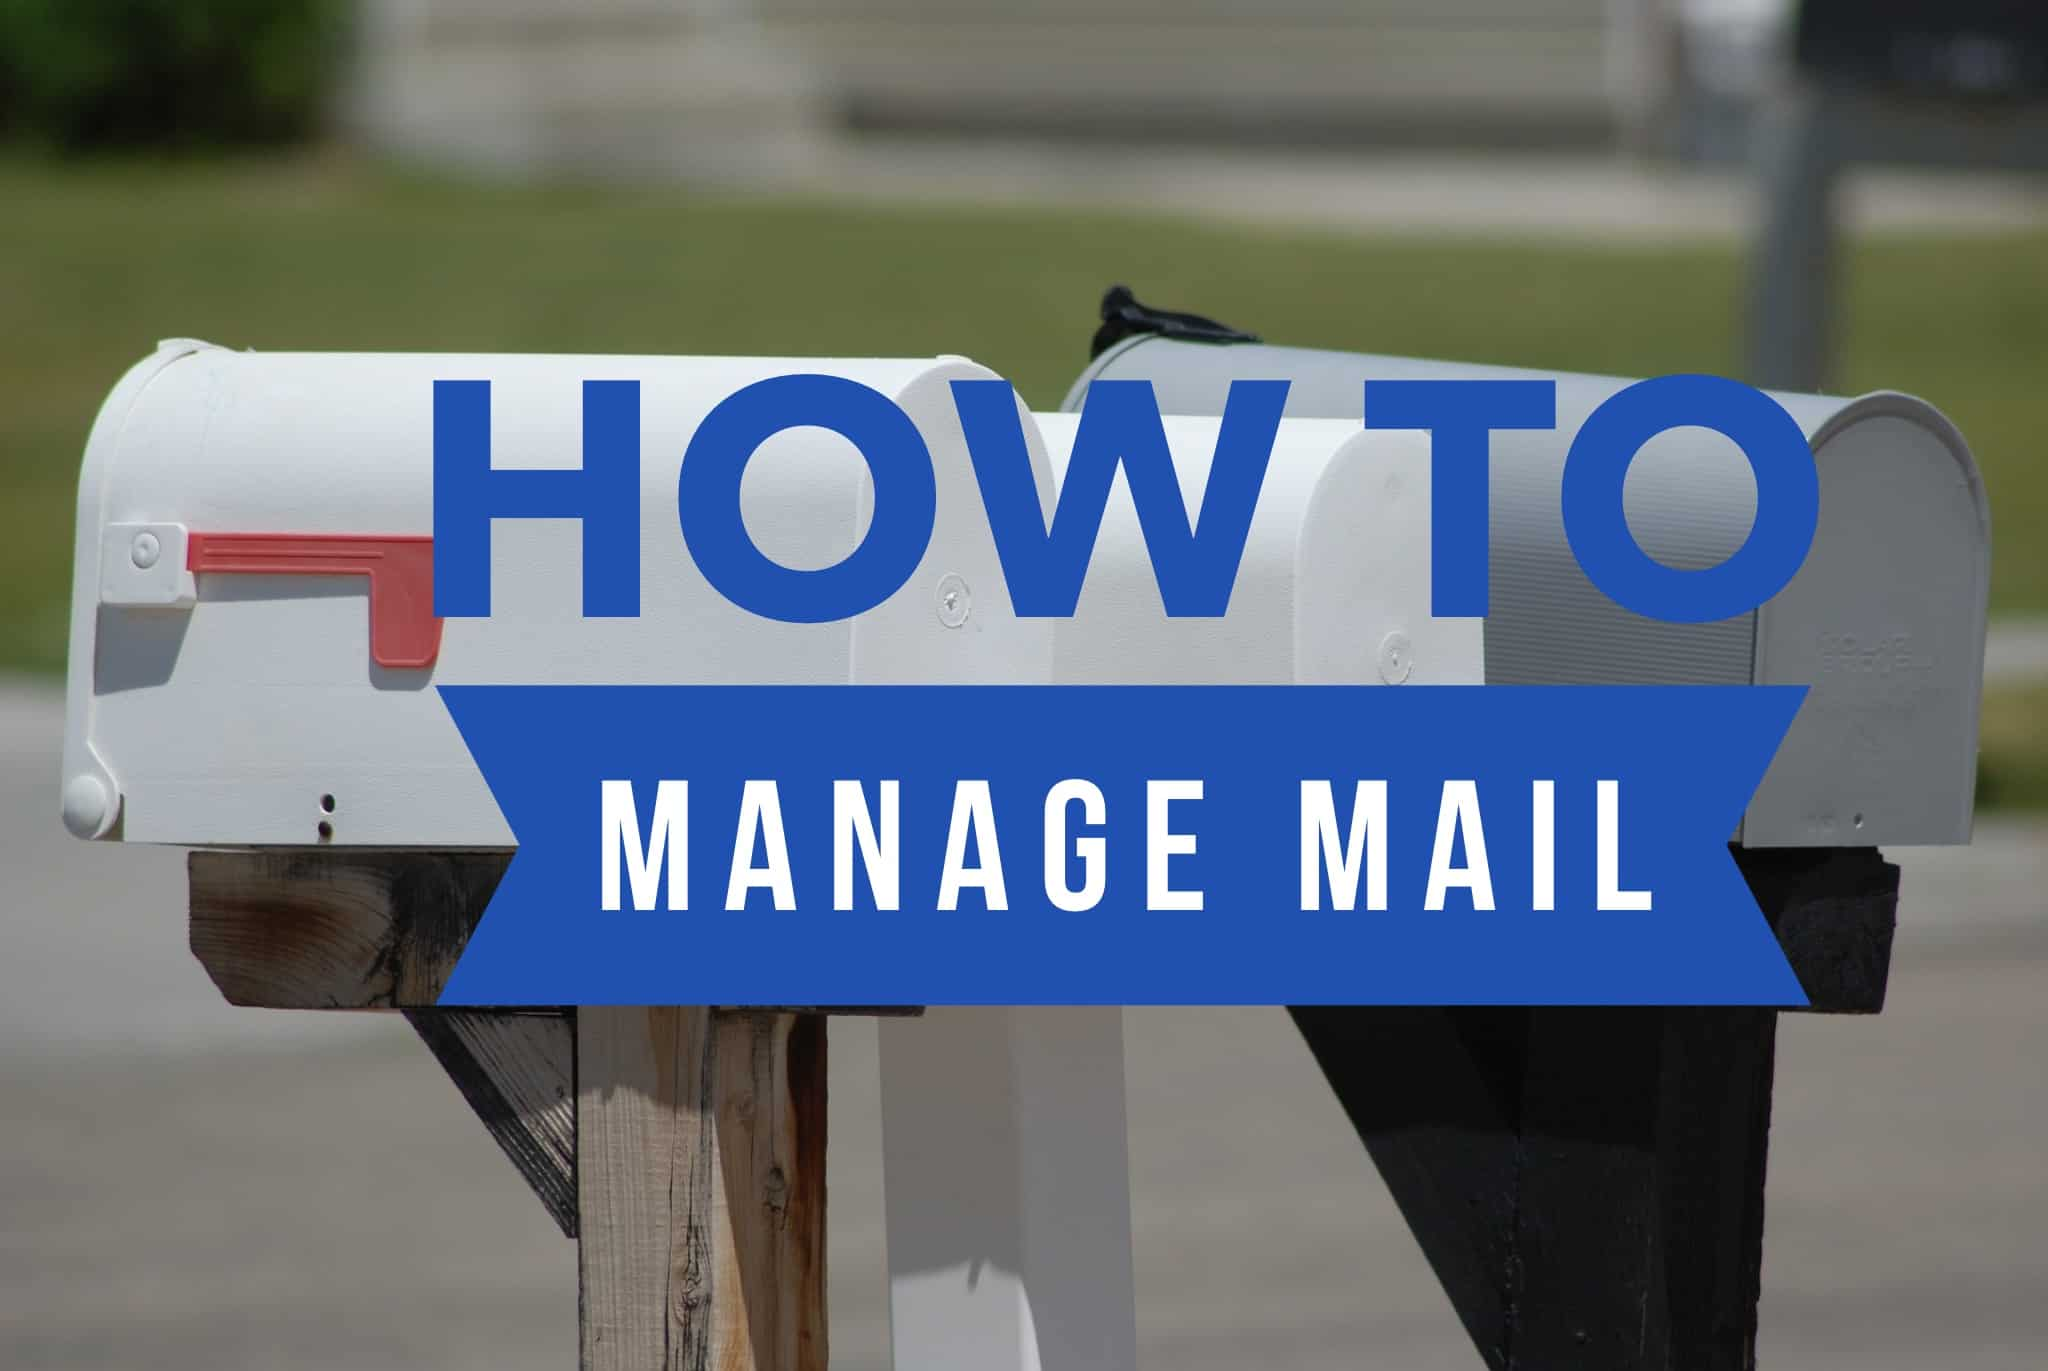 How to Manage Mail title